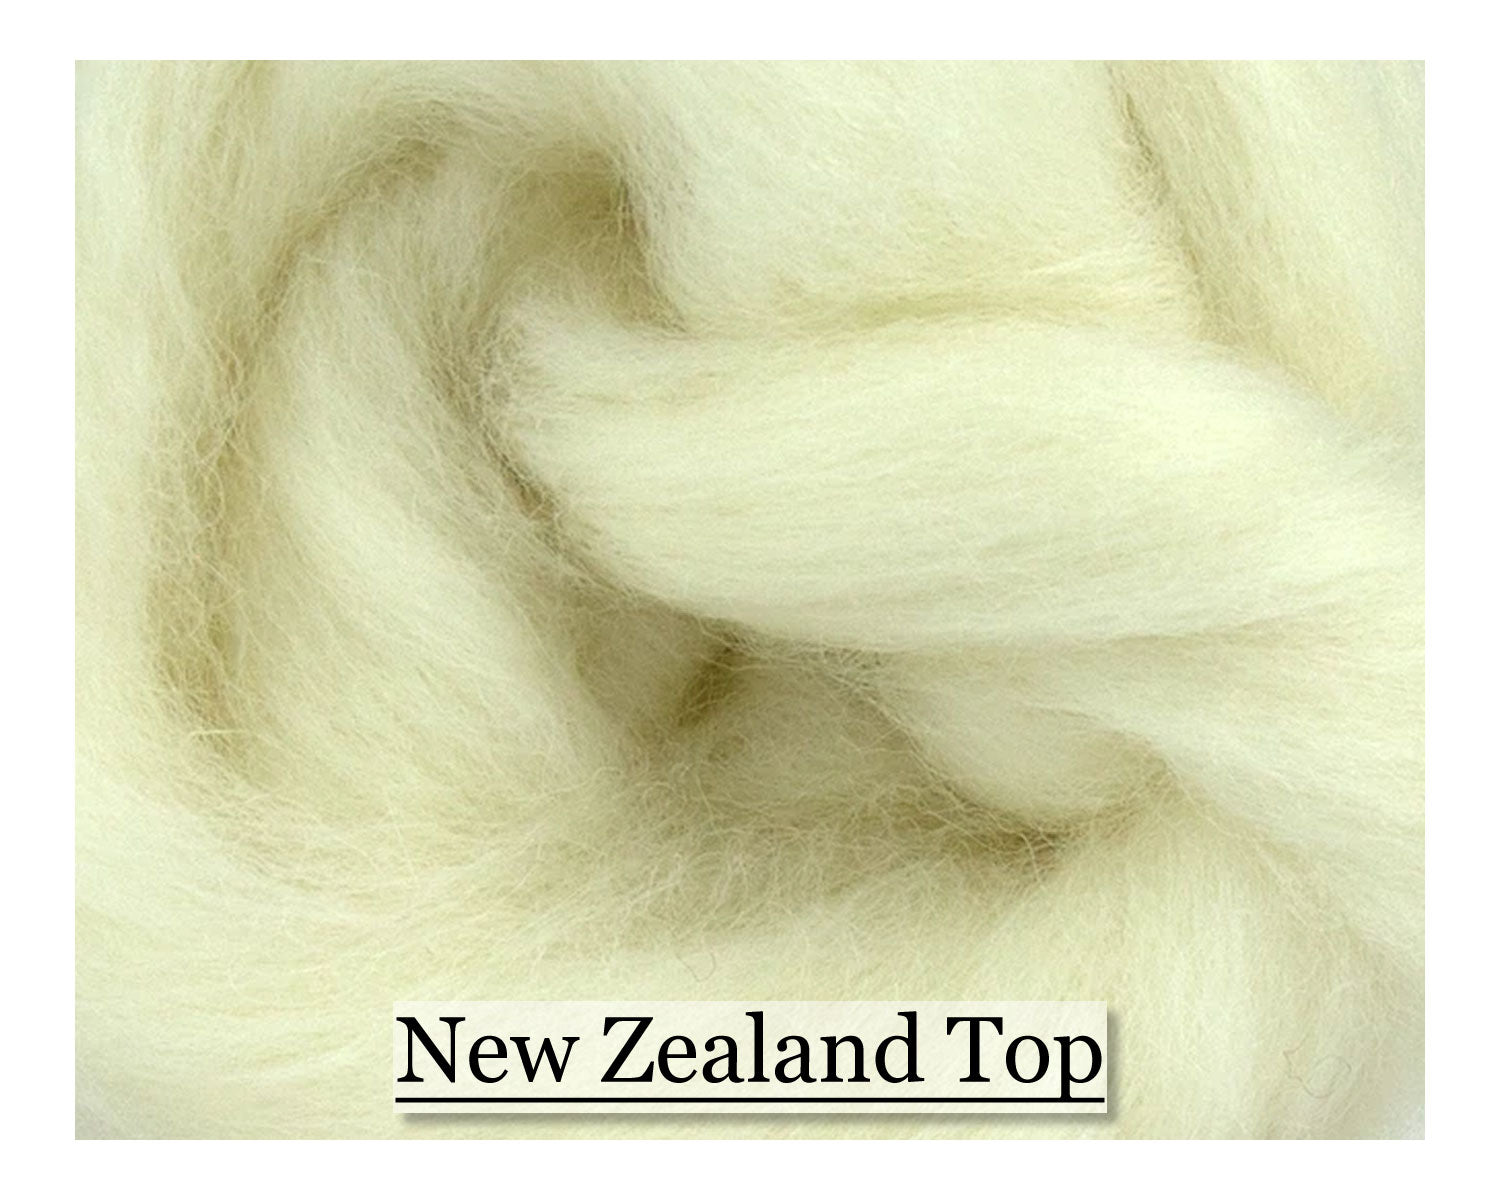 New Zealand Top - 16 oz size